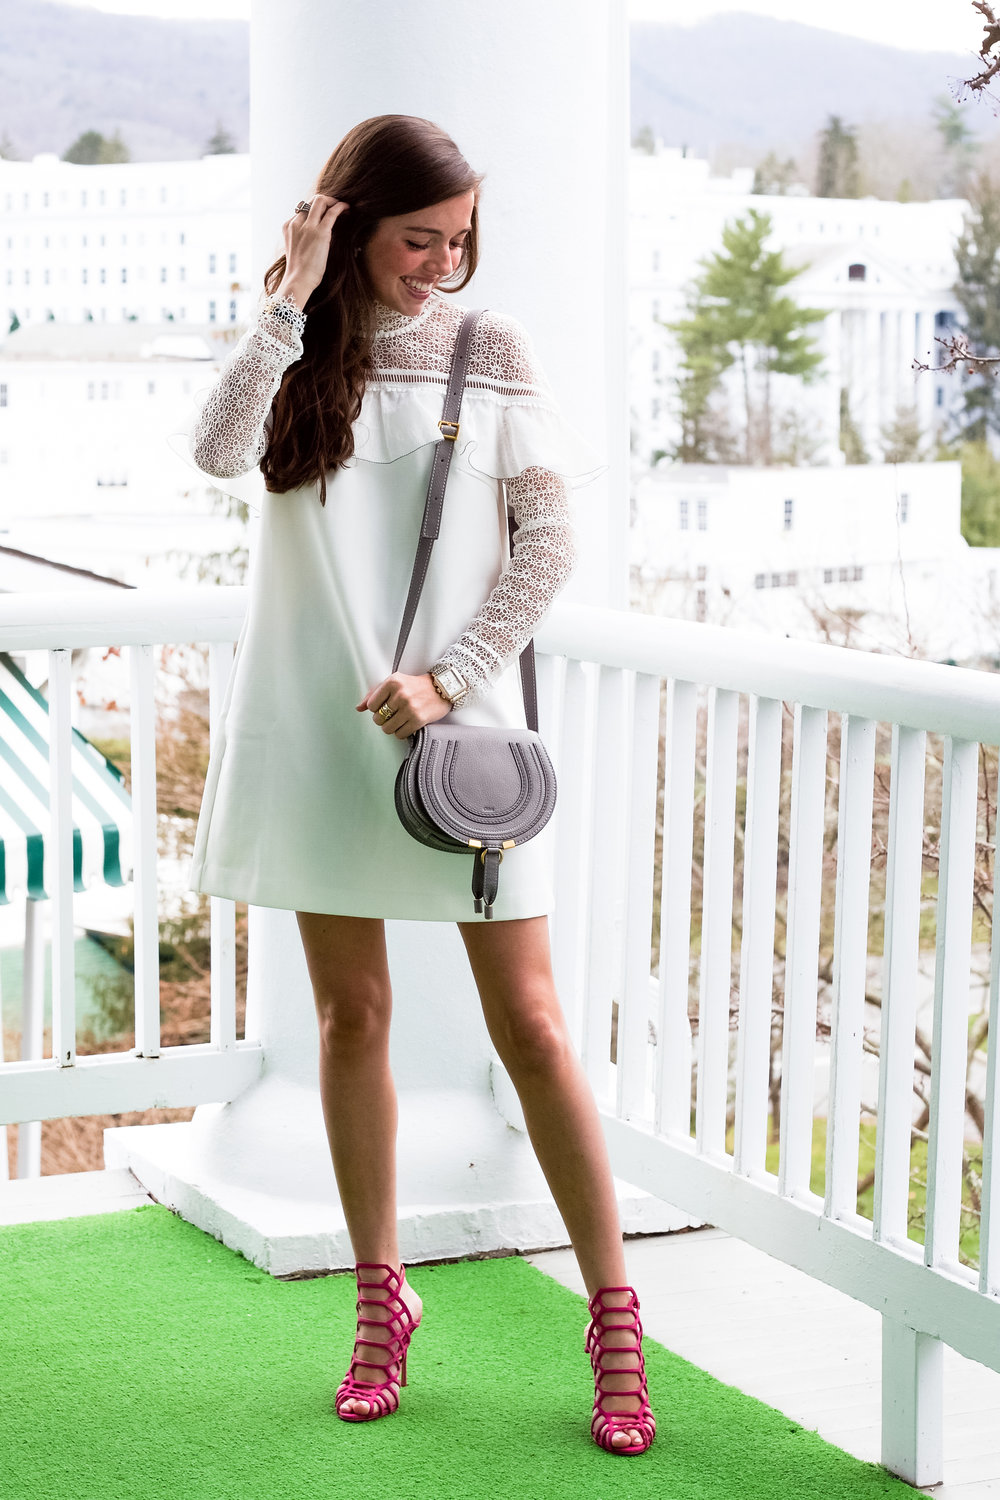 fashion blogger lcb style greenbrier resort christmas self portrait schutz shoes (32 of 39).jpg